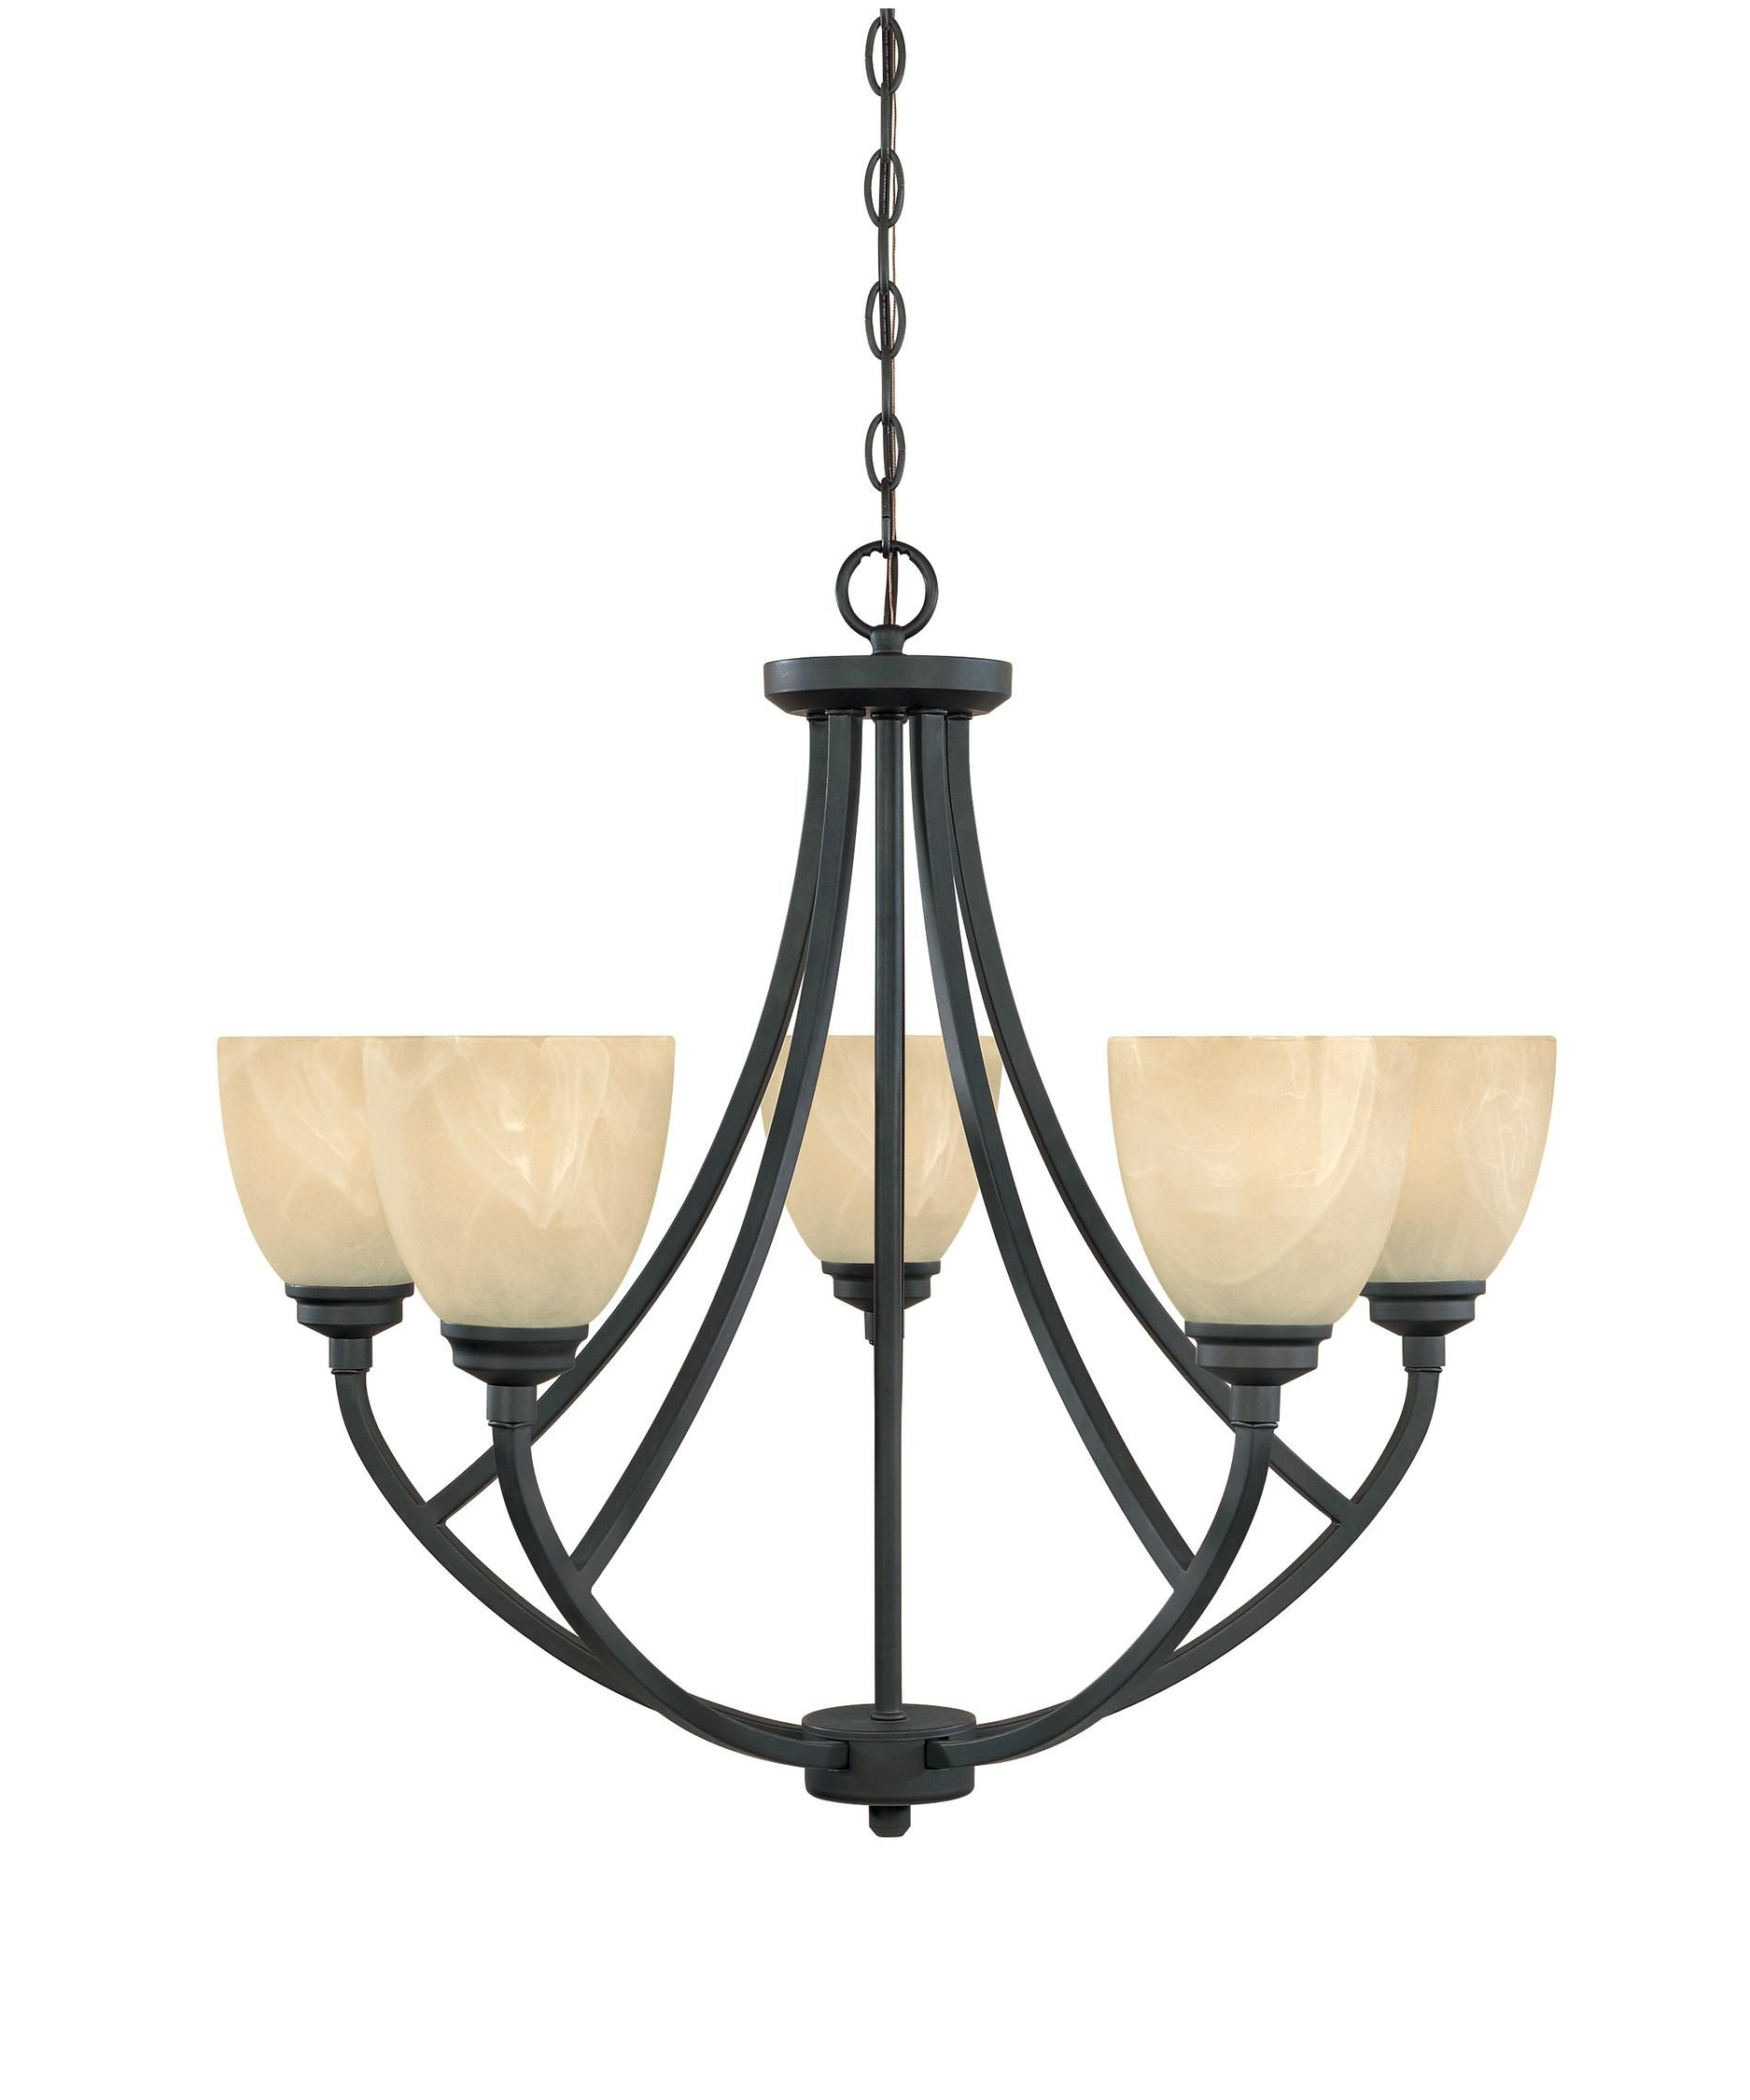 2020 Tackwood 27 Inch 5 Light Chandelierdesigners Fountain Within Suki 5 Light Shaded Chandeliers (View 2 of 25)